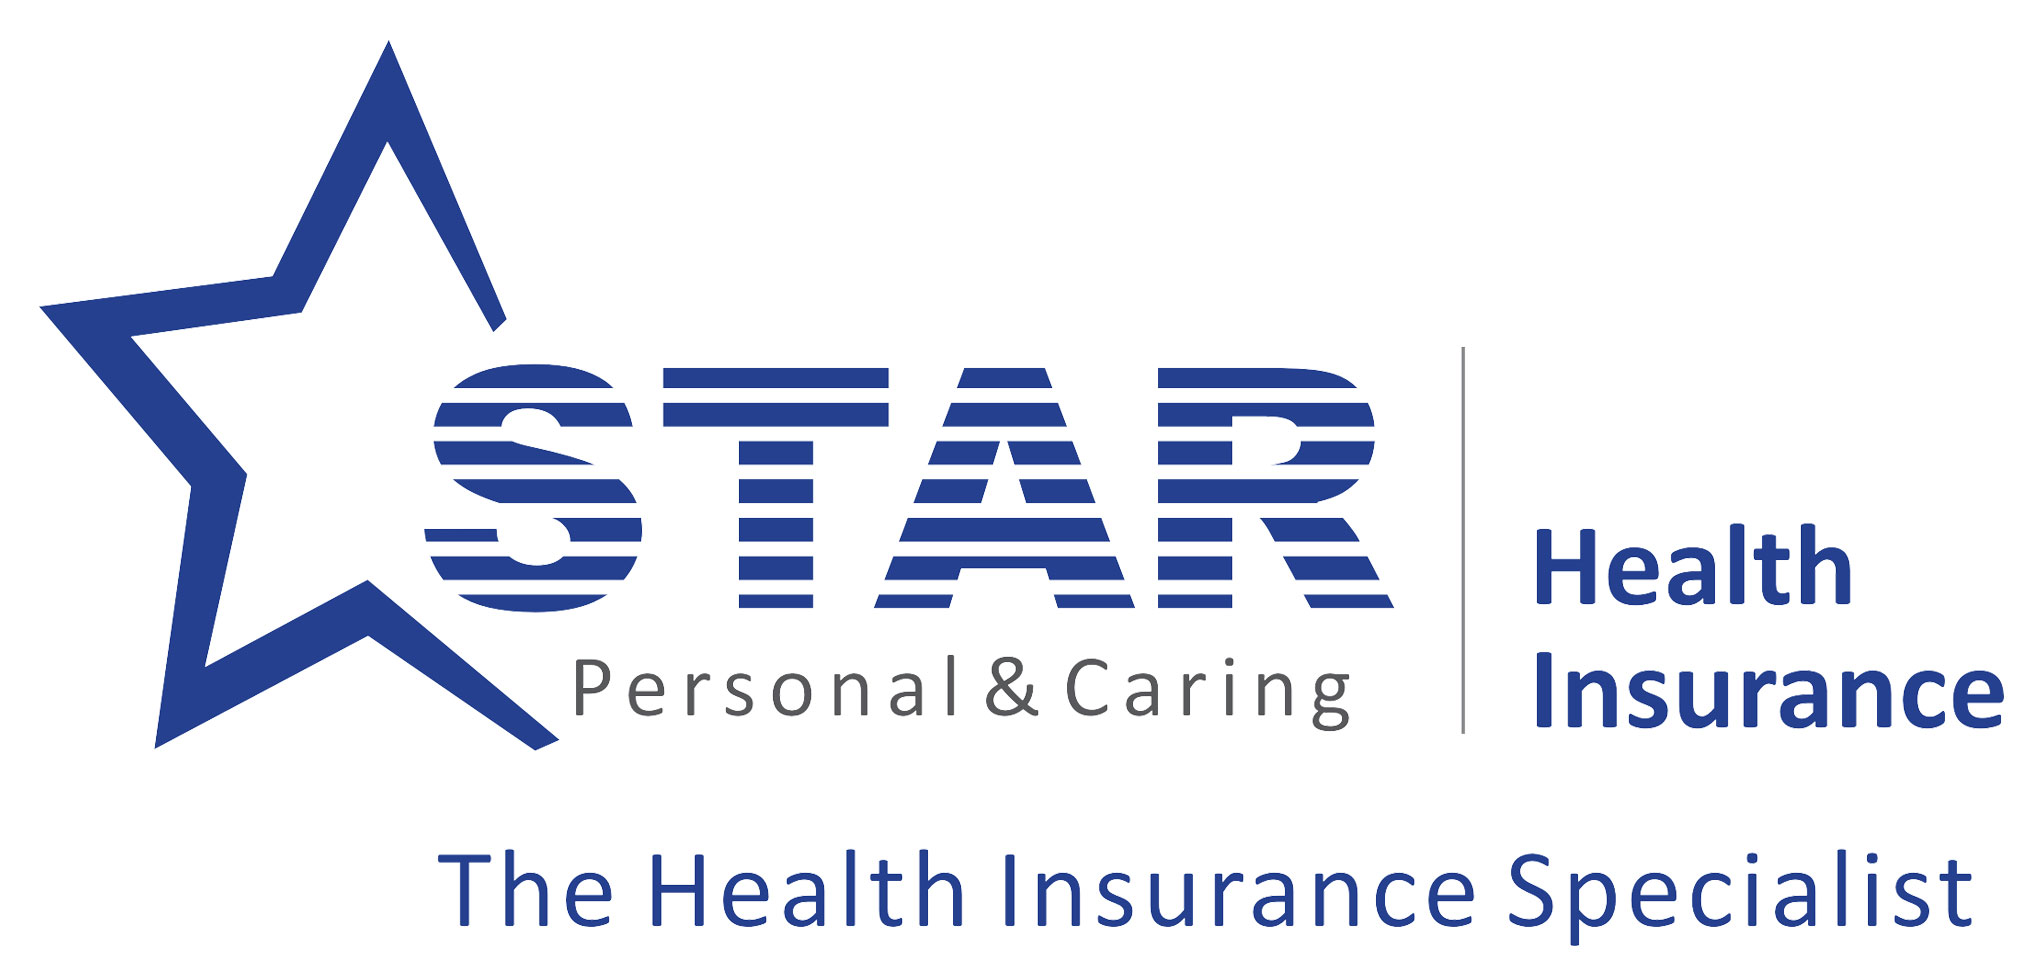 Star Comprehensive Health Insurance Policy (Individual) Image